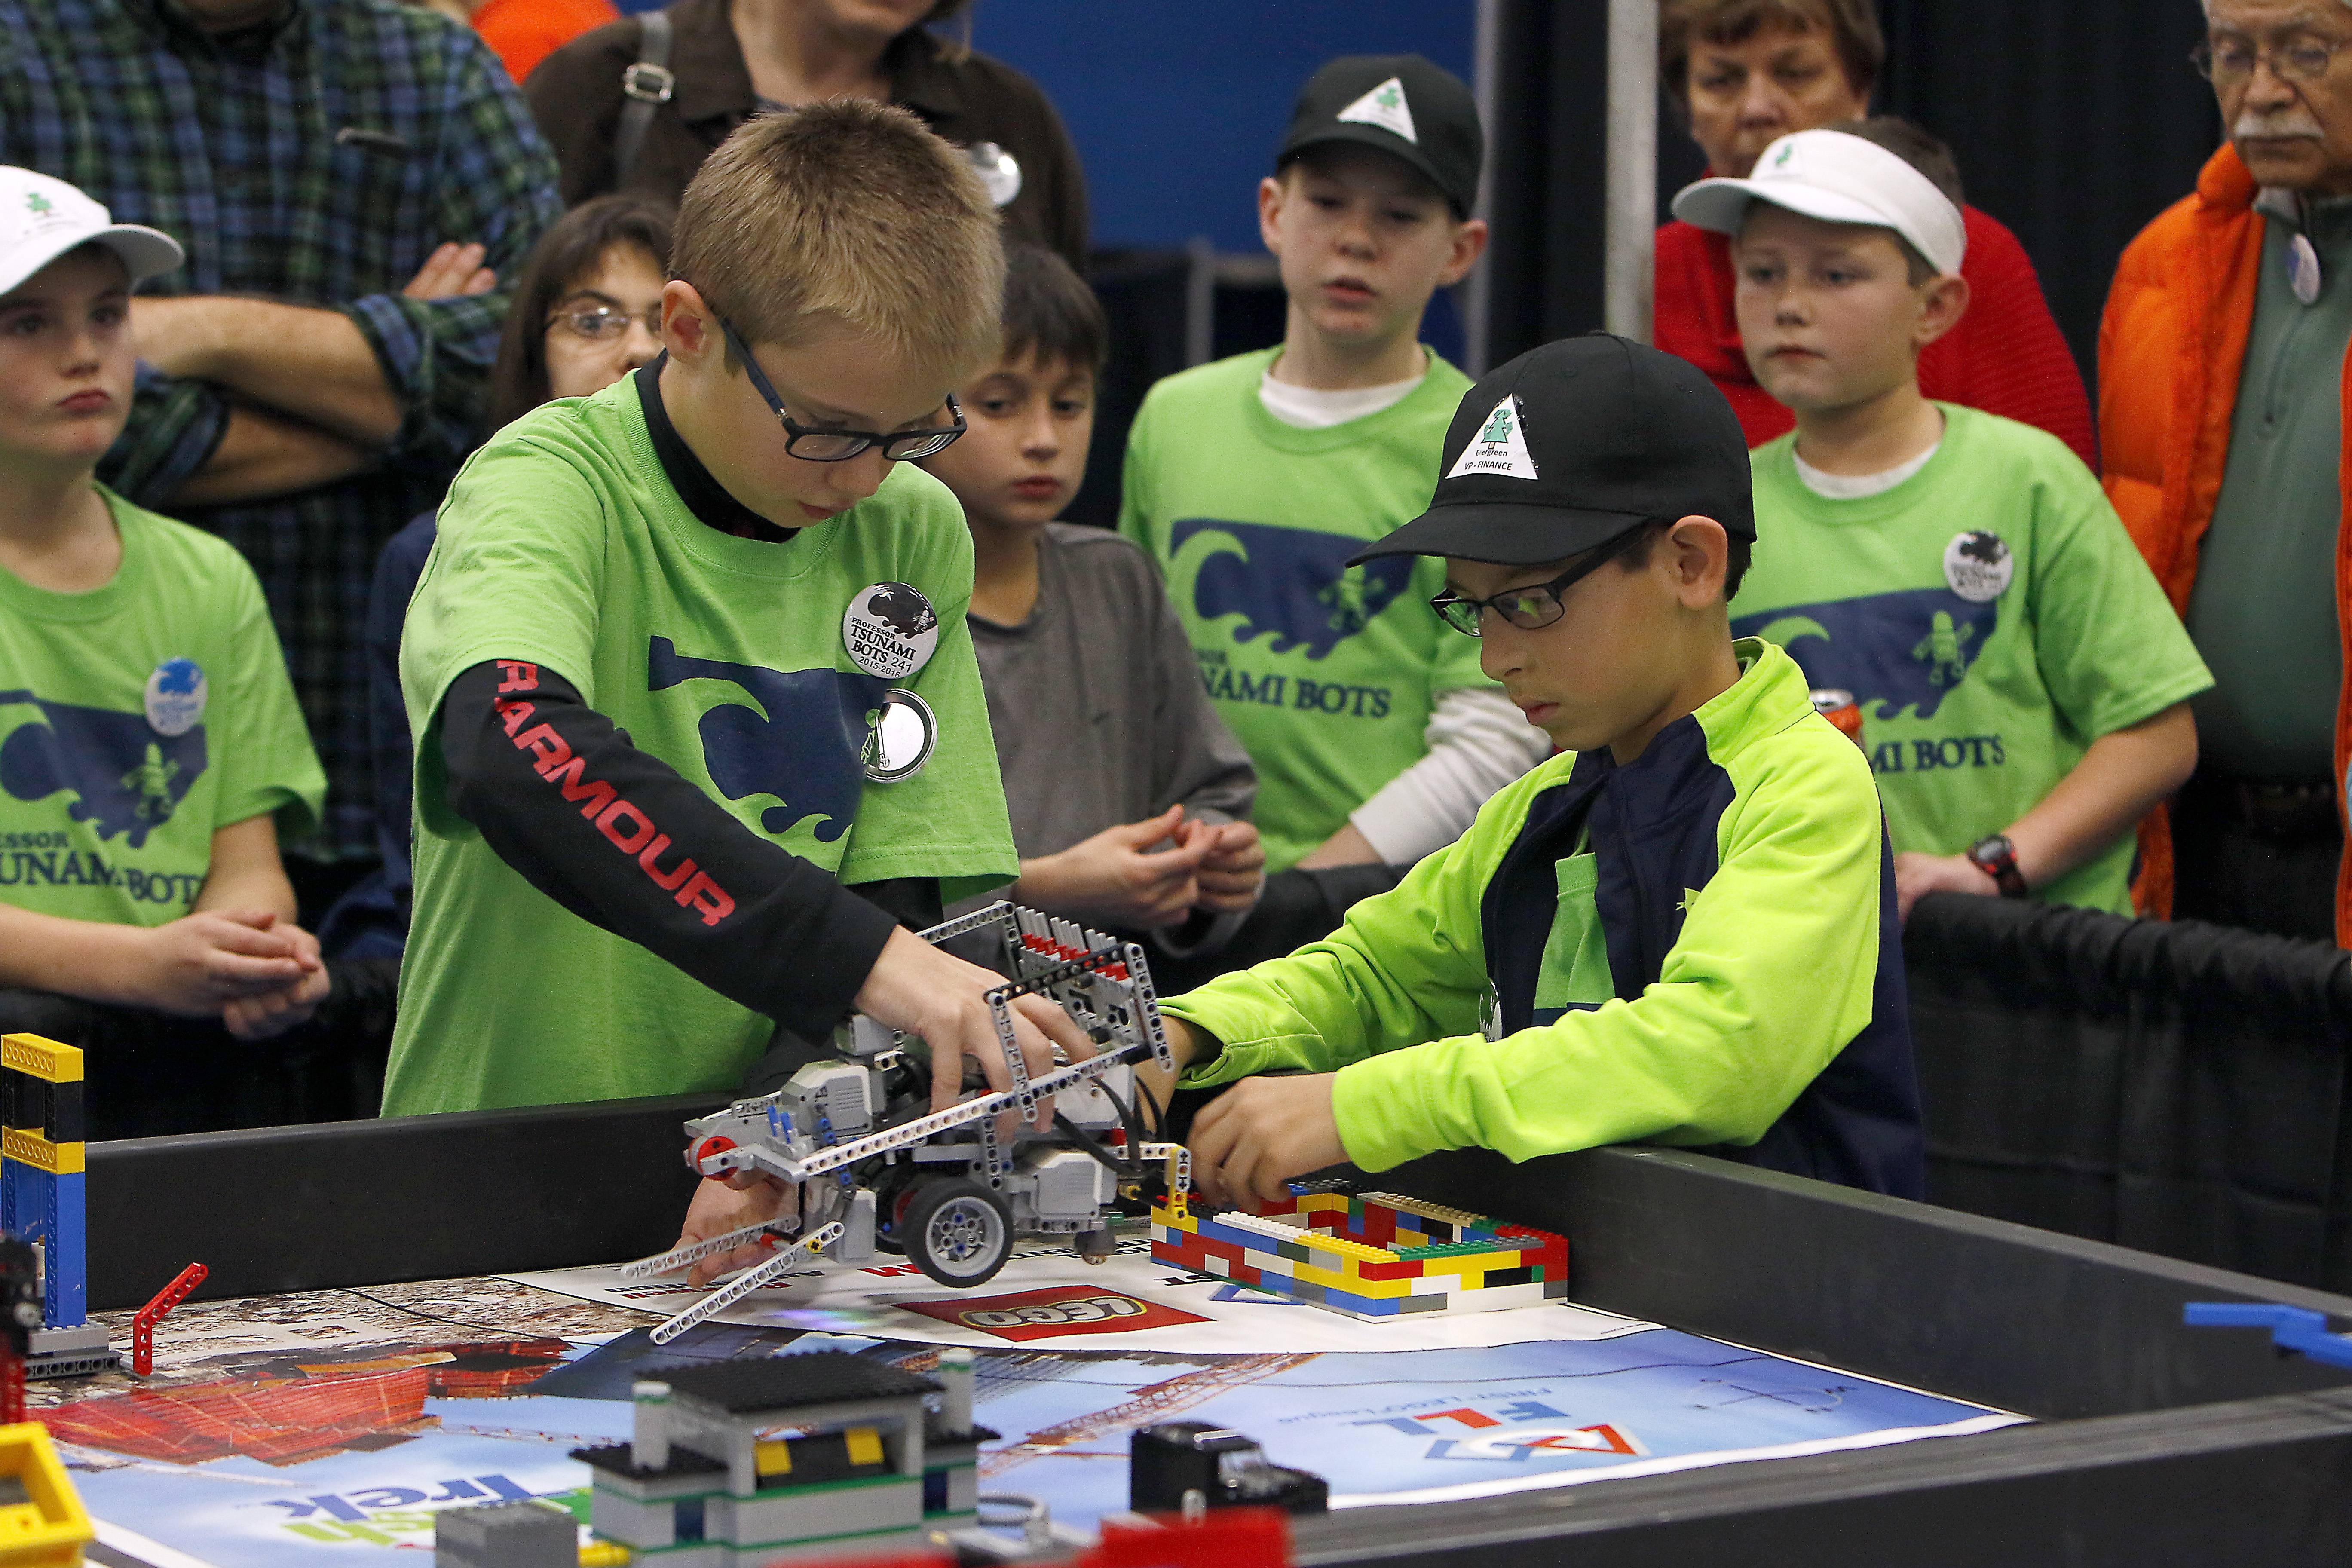 Aidan Fergus, 11, left and Sam Frusta, 11, both of St. Charles and team Tsunami Bots of the Fox Valley Robotics Club prepare their entry Saturday during the FIRST Lego state championship for northern Illinois is at Elgin Community College.